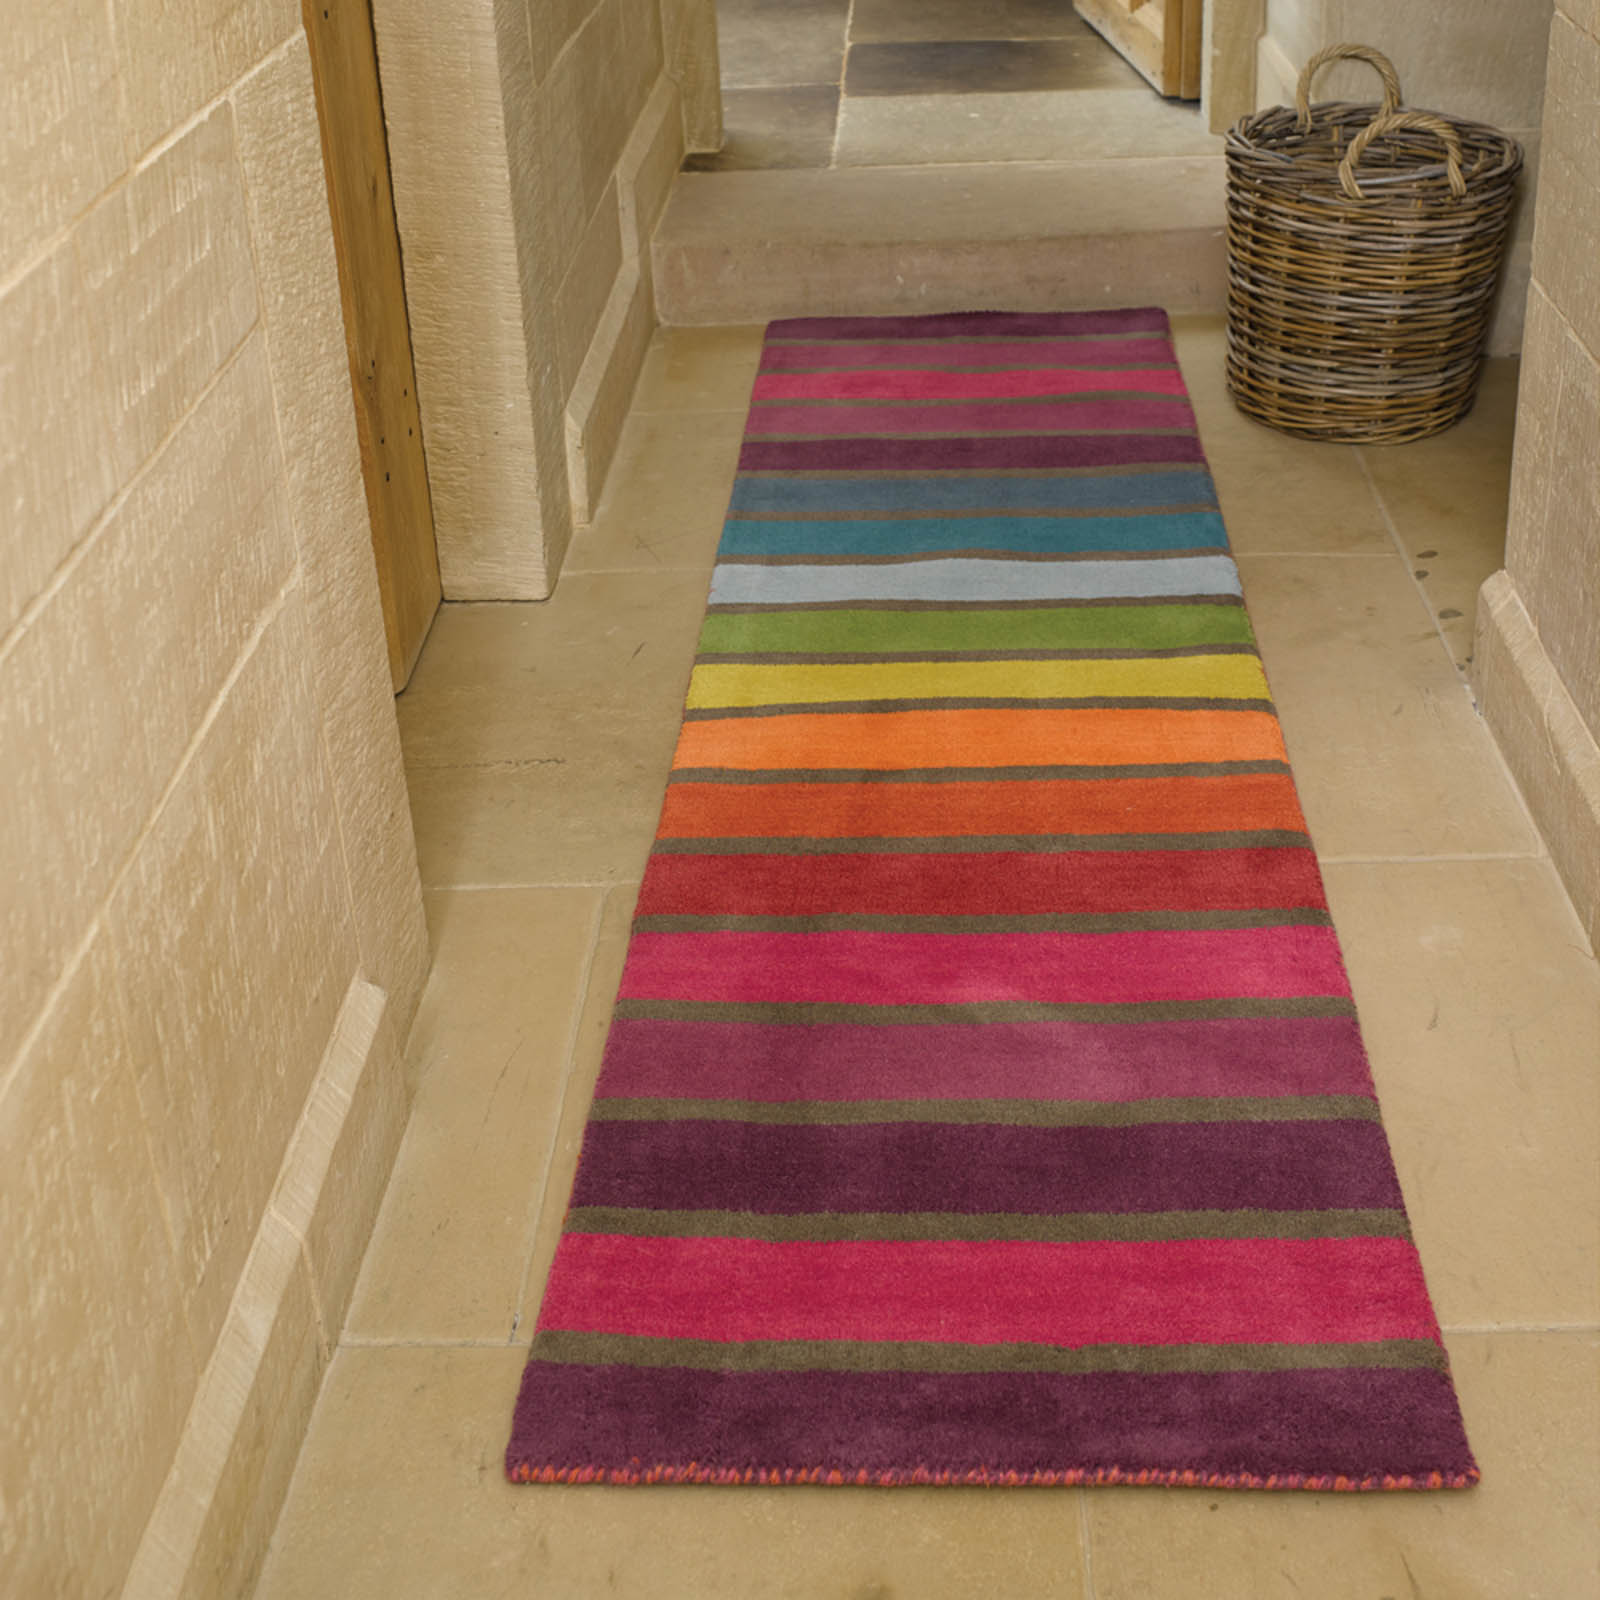 Runner Rugs Uk: Illusion Candy Hallway Runners